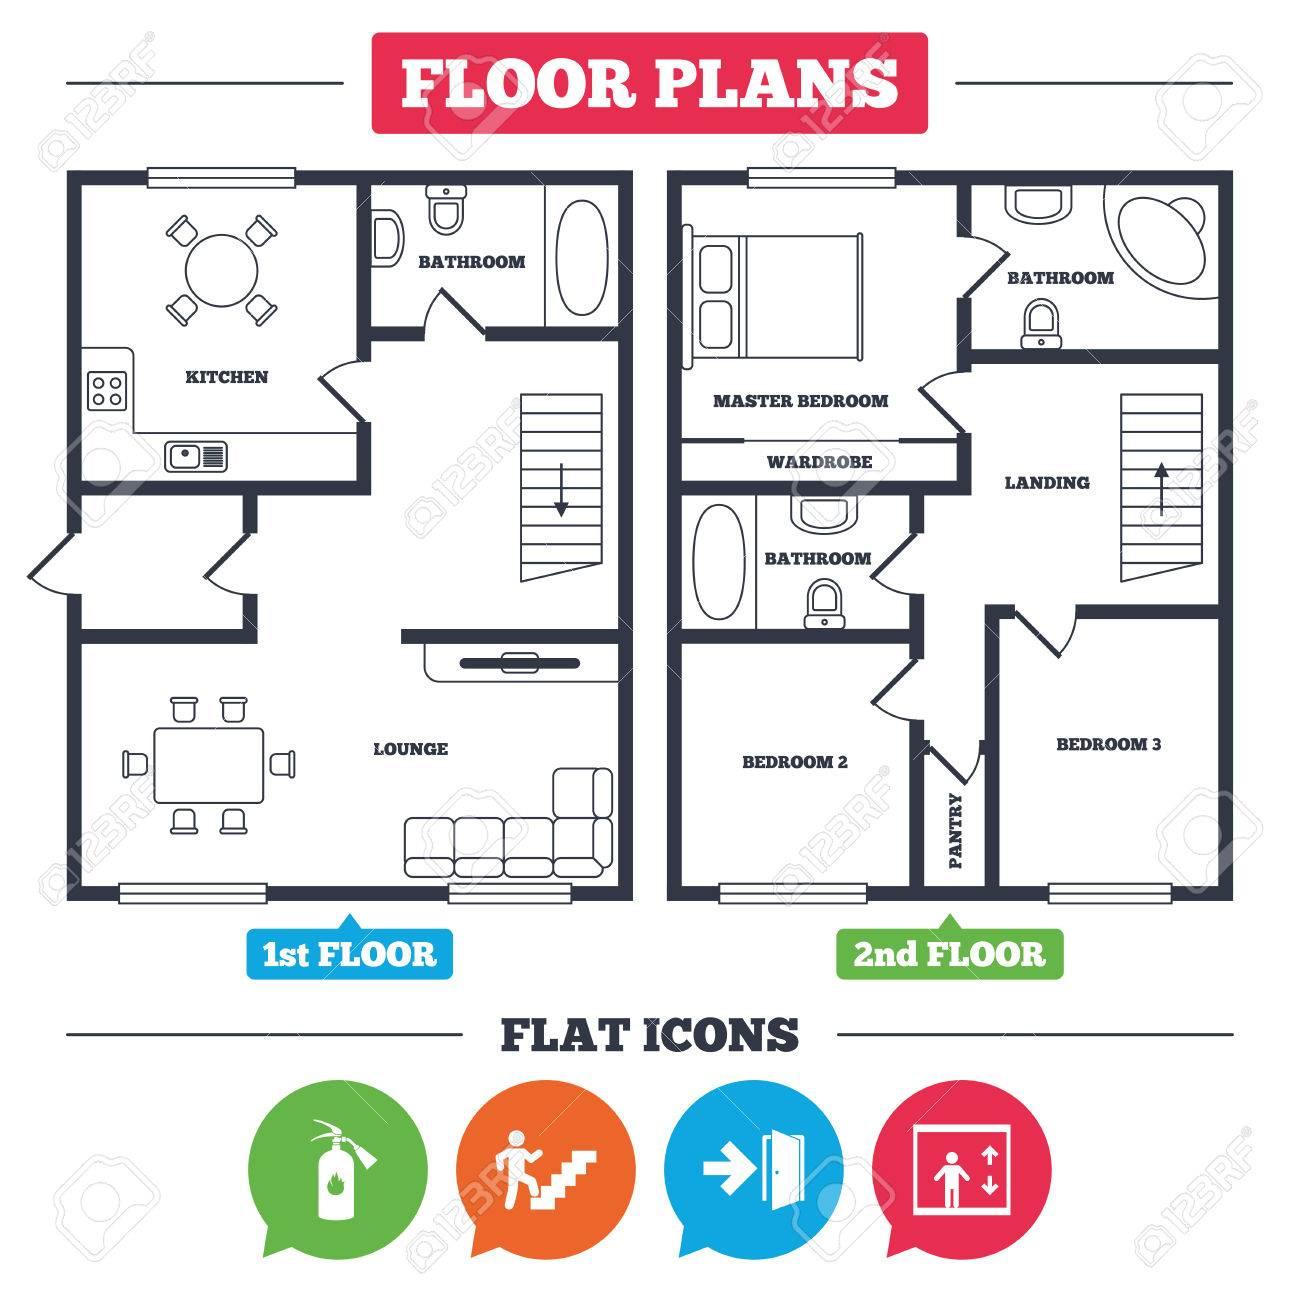 Architecture Plan With Furniture House Floor Plan Emergency Royalty Free Cliparts Vectors And Stock Illustration Image 70144019